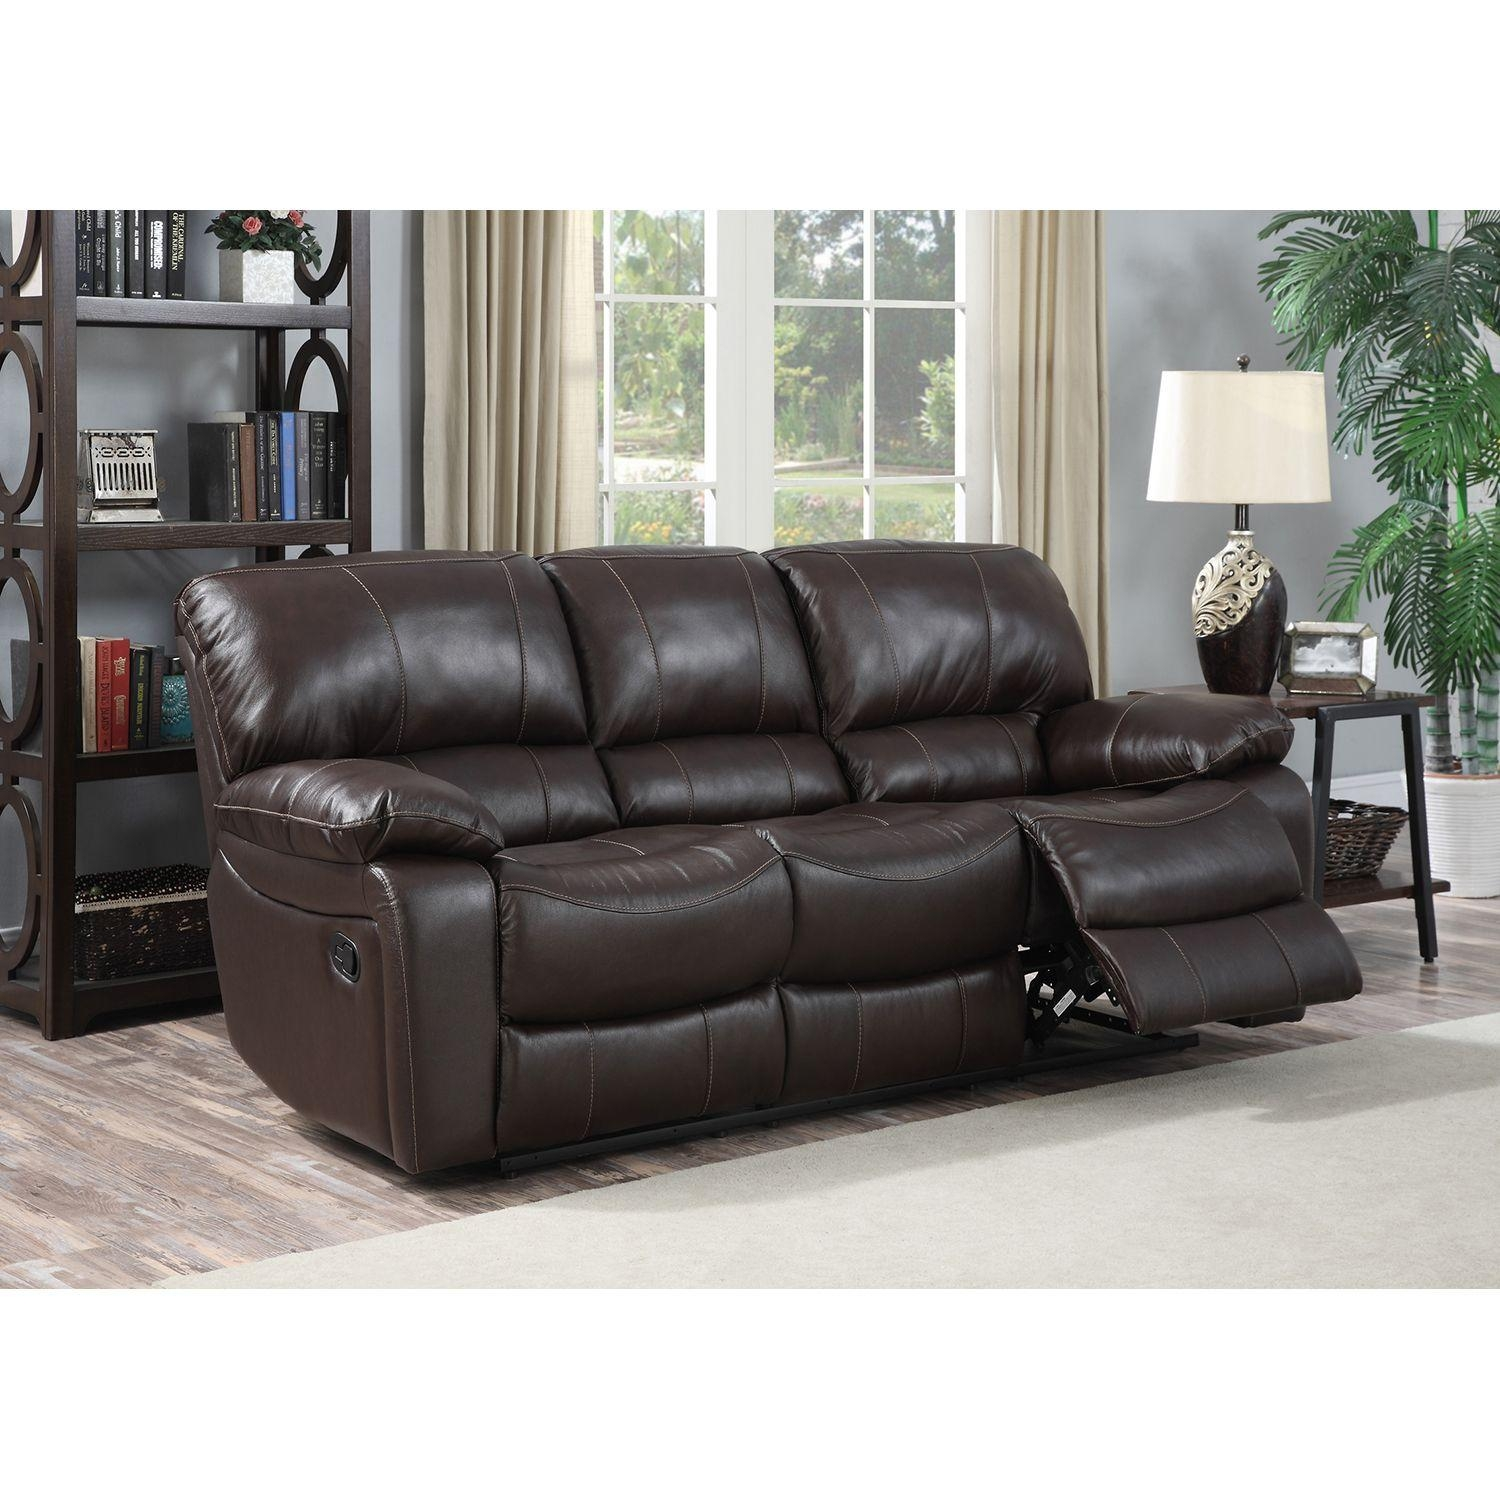 Berkline Leather Sofa | Sofa Gallery | Kengire Within Berkline Recliner Sofas (View 4 of 20)